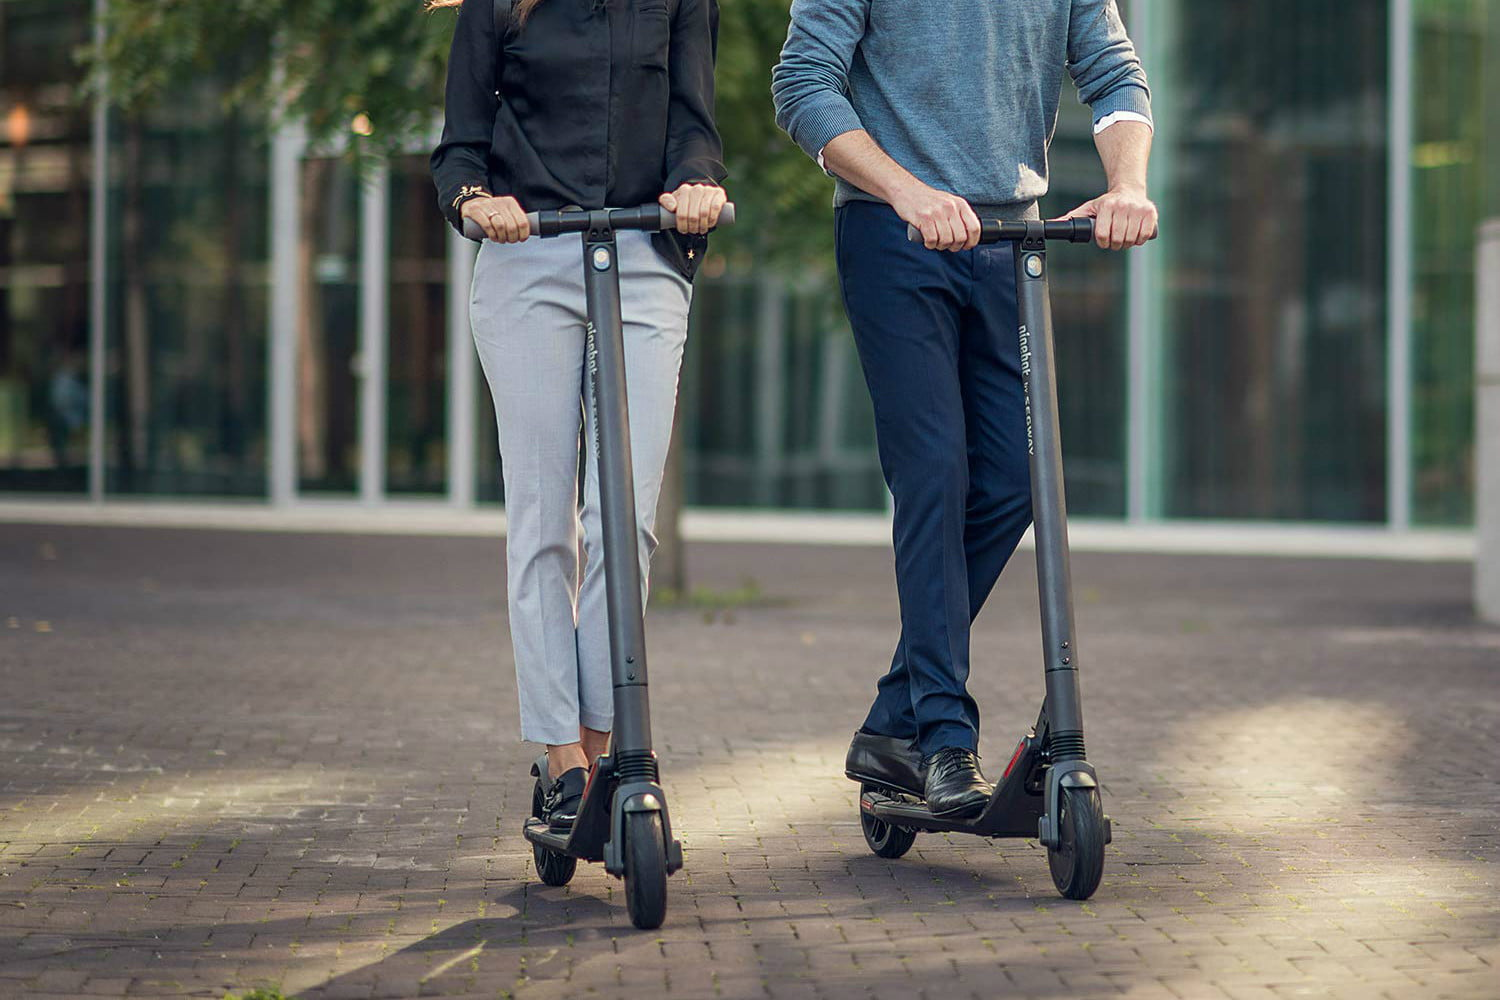 Avoid rush hour traffic and get $100 off this Segway electric scooter at Amazon